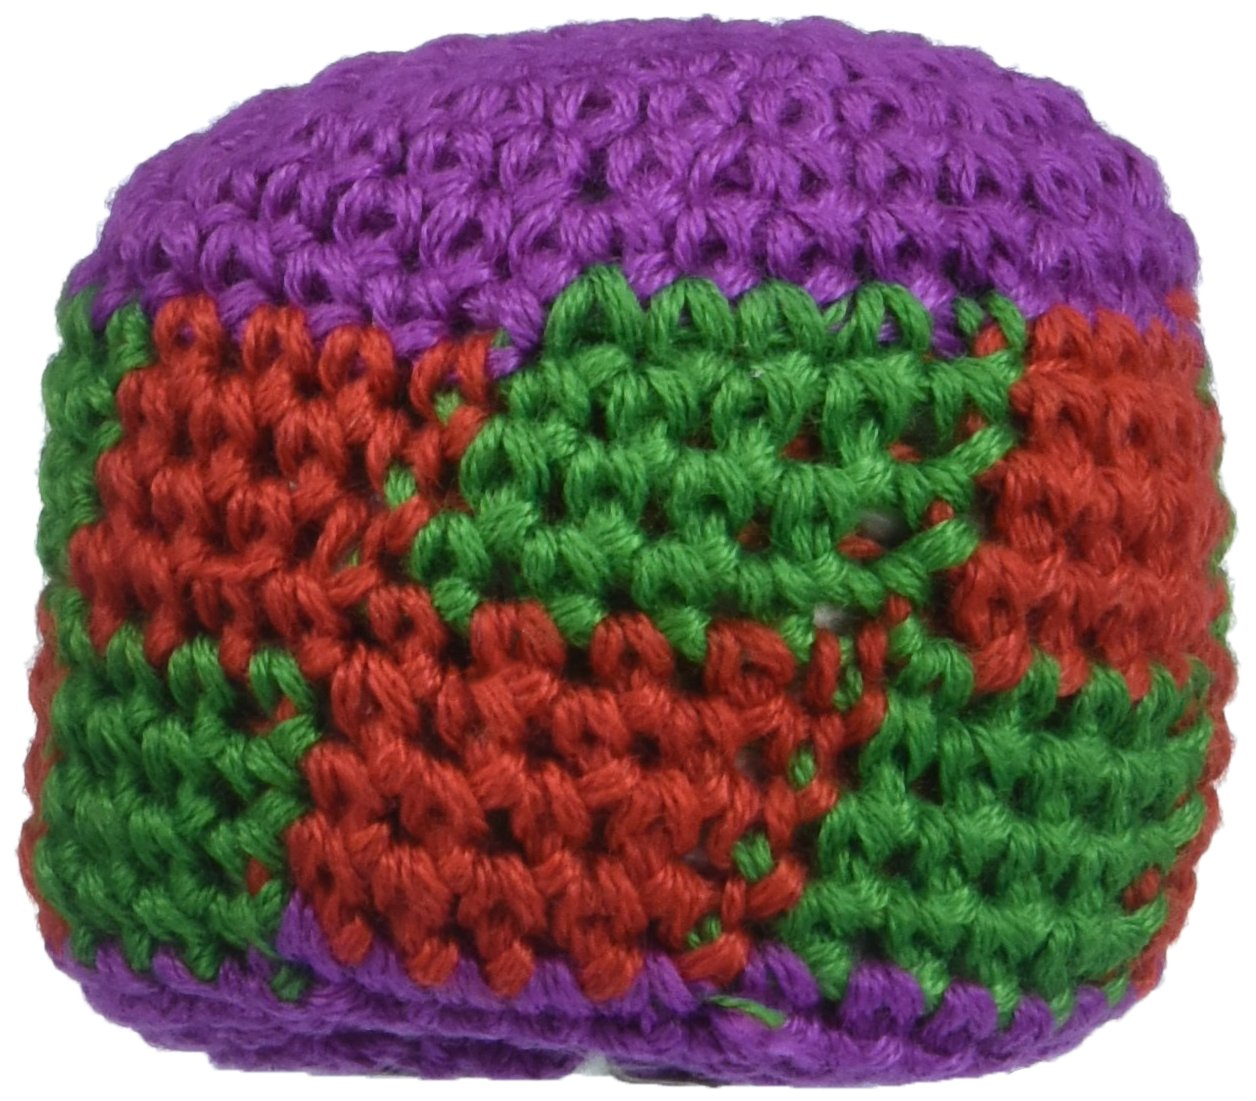 Hackey Sacks Knitted Kick Balls (Pack of 12) by Fun Express